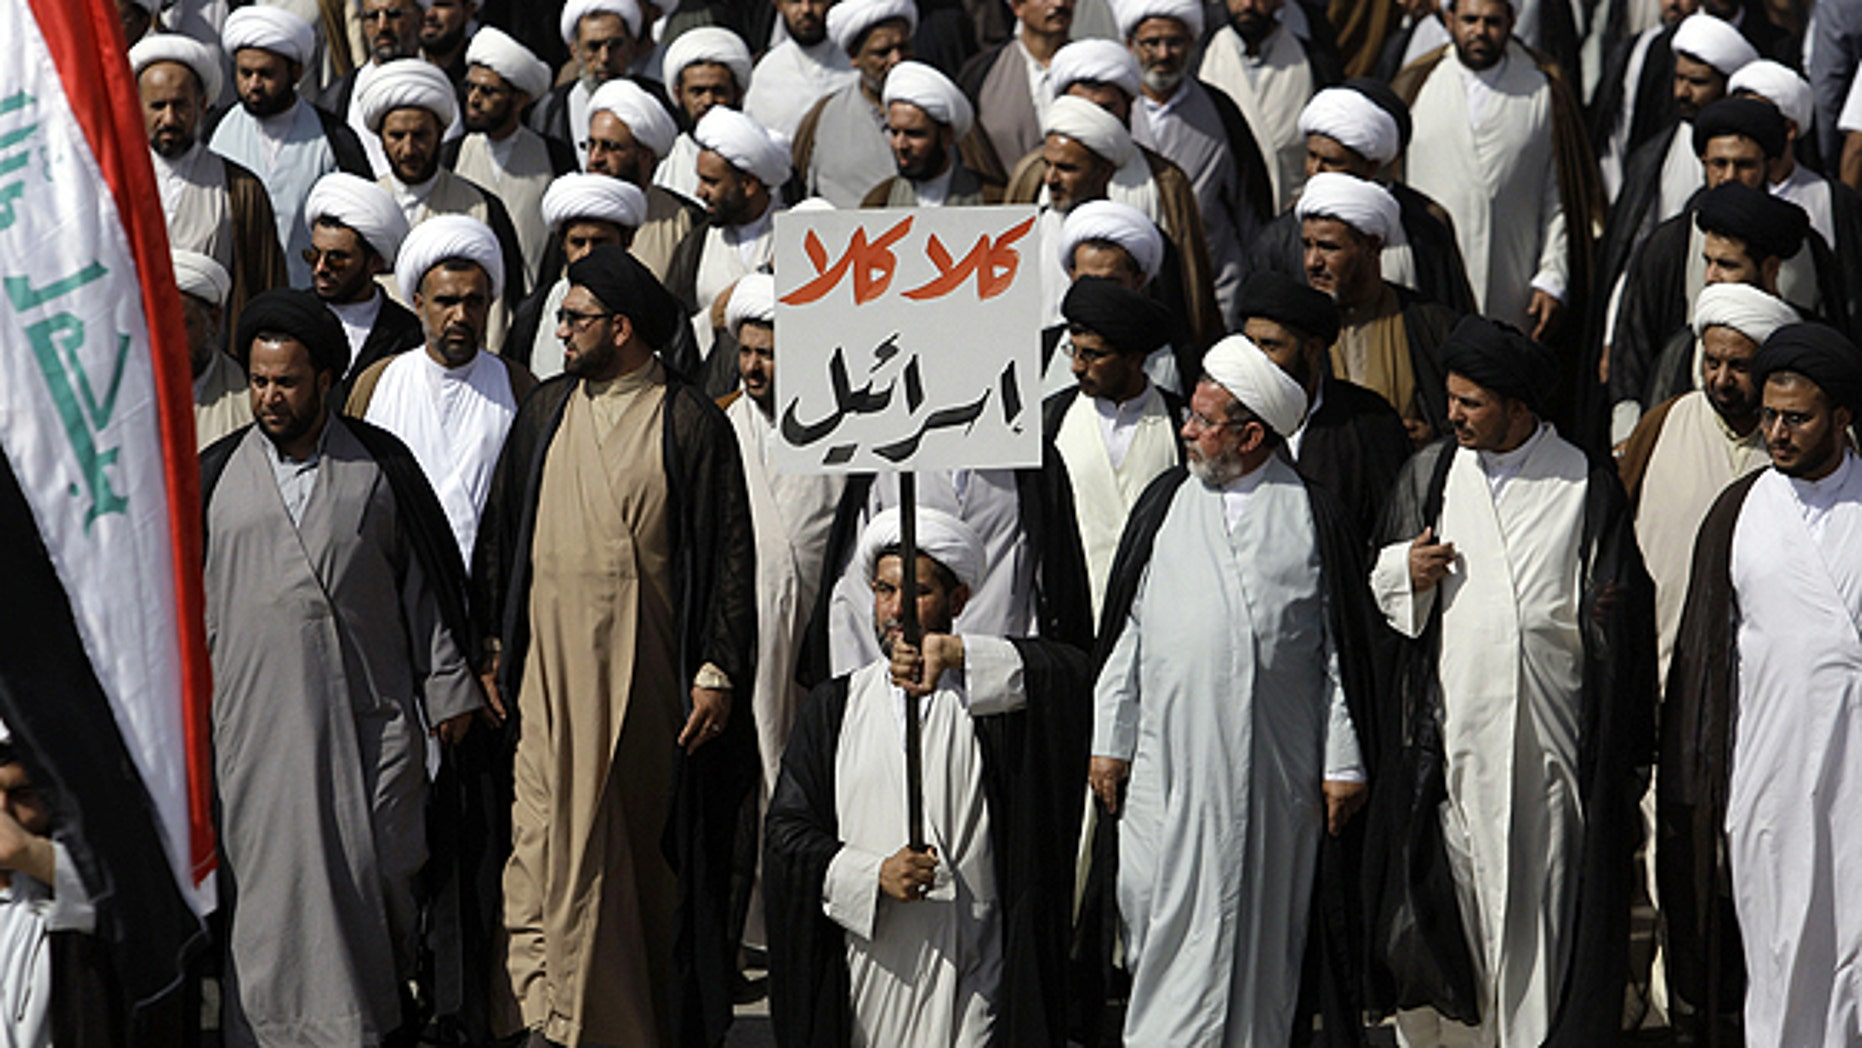 """May 26: Supporters of cleric Muqtada al-Sadr march while holding a sign that reads, """"no, no to Israel,"""" in Arabic, in the Sadr City district of Baghdad, Iraq."""